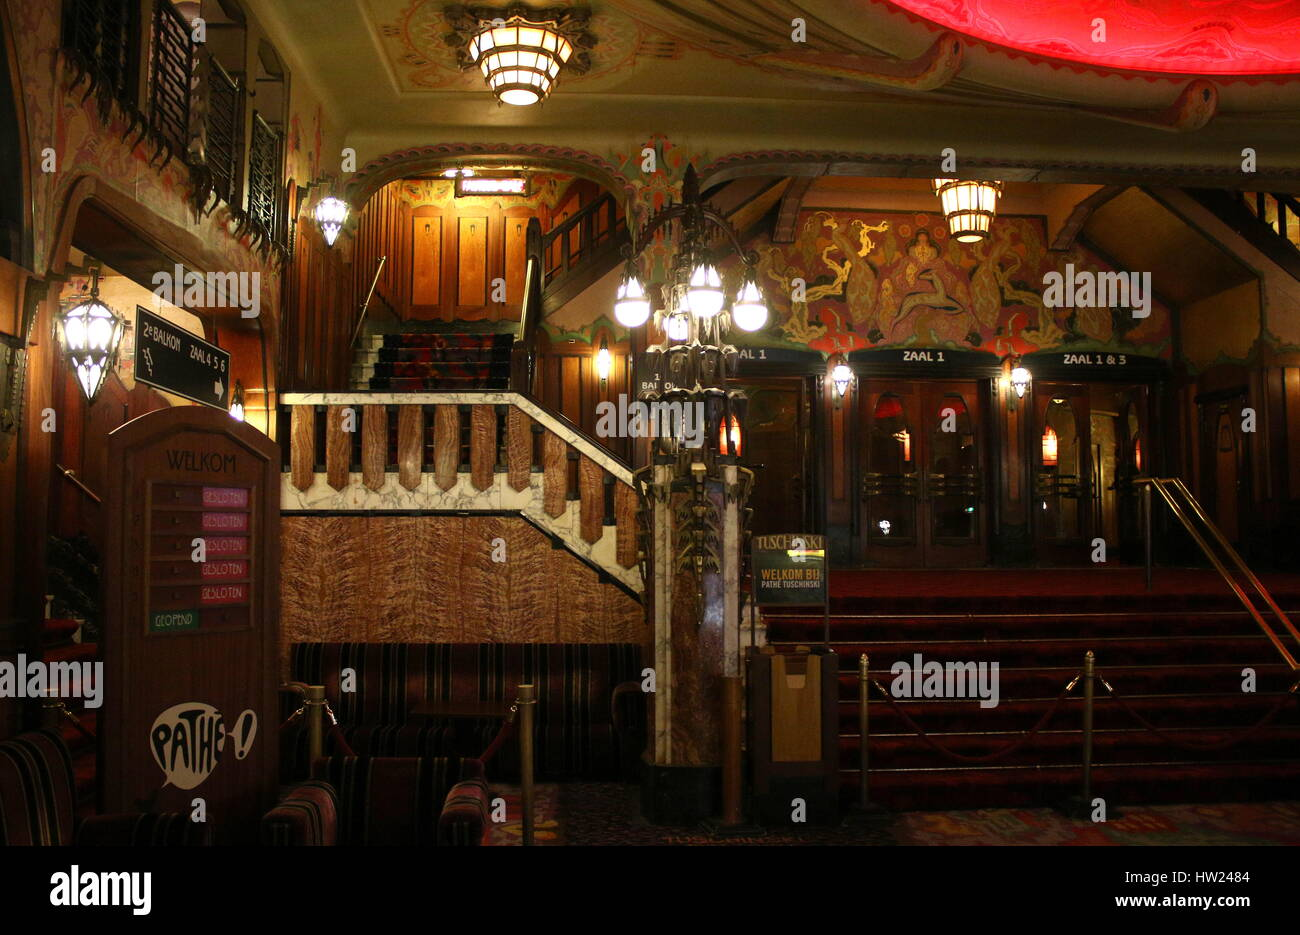 Interior of Cinema Pathé Tuschinski, an Art Nouveau film theater in Amsterdam, Netherlands. - Stock Image